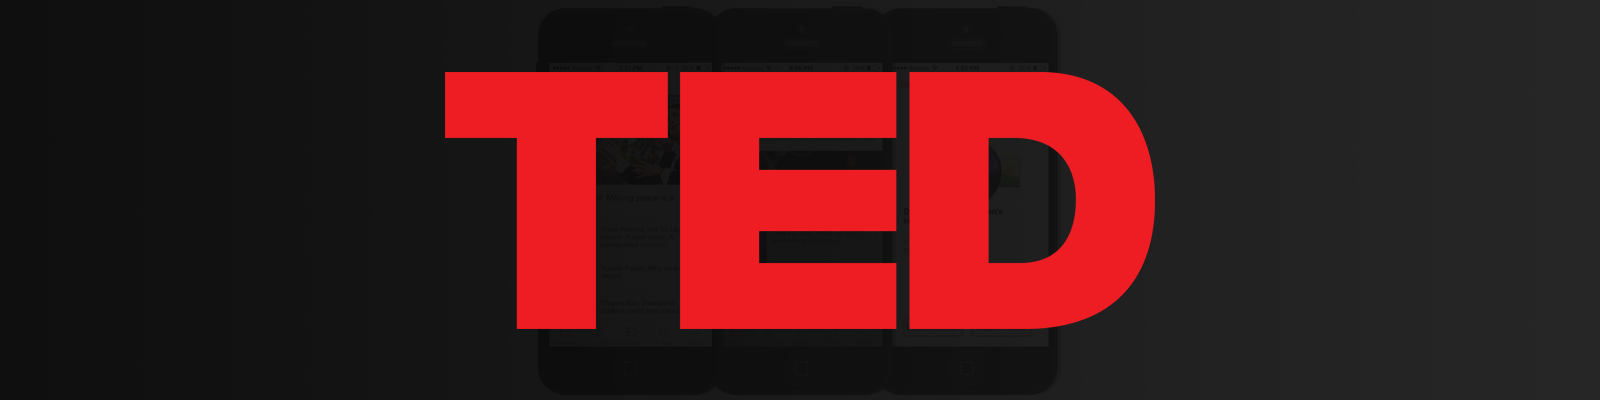 ted cost video streaming